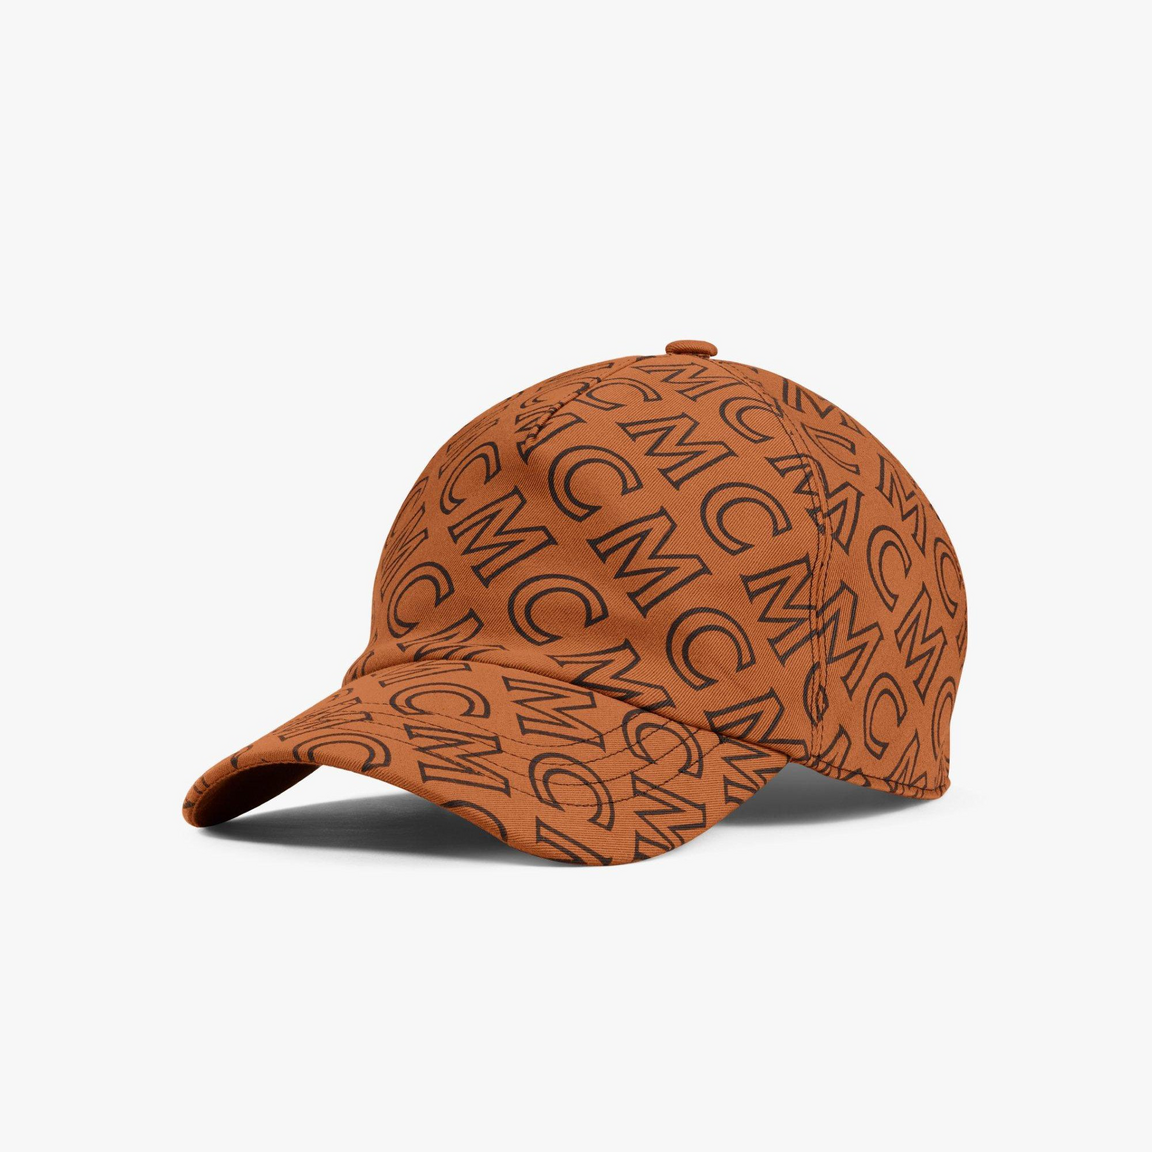 Monogram Cotton Cap